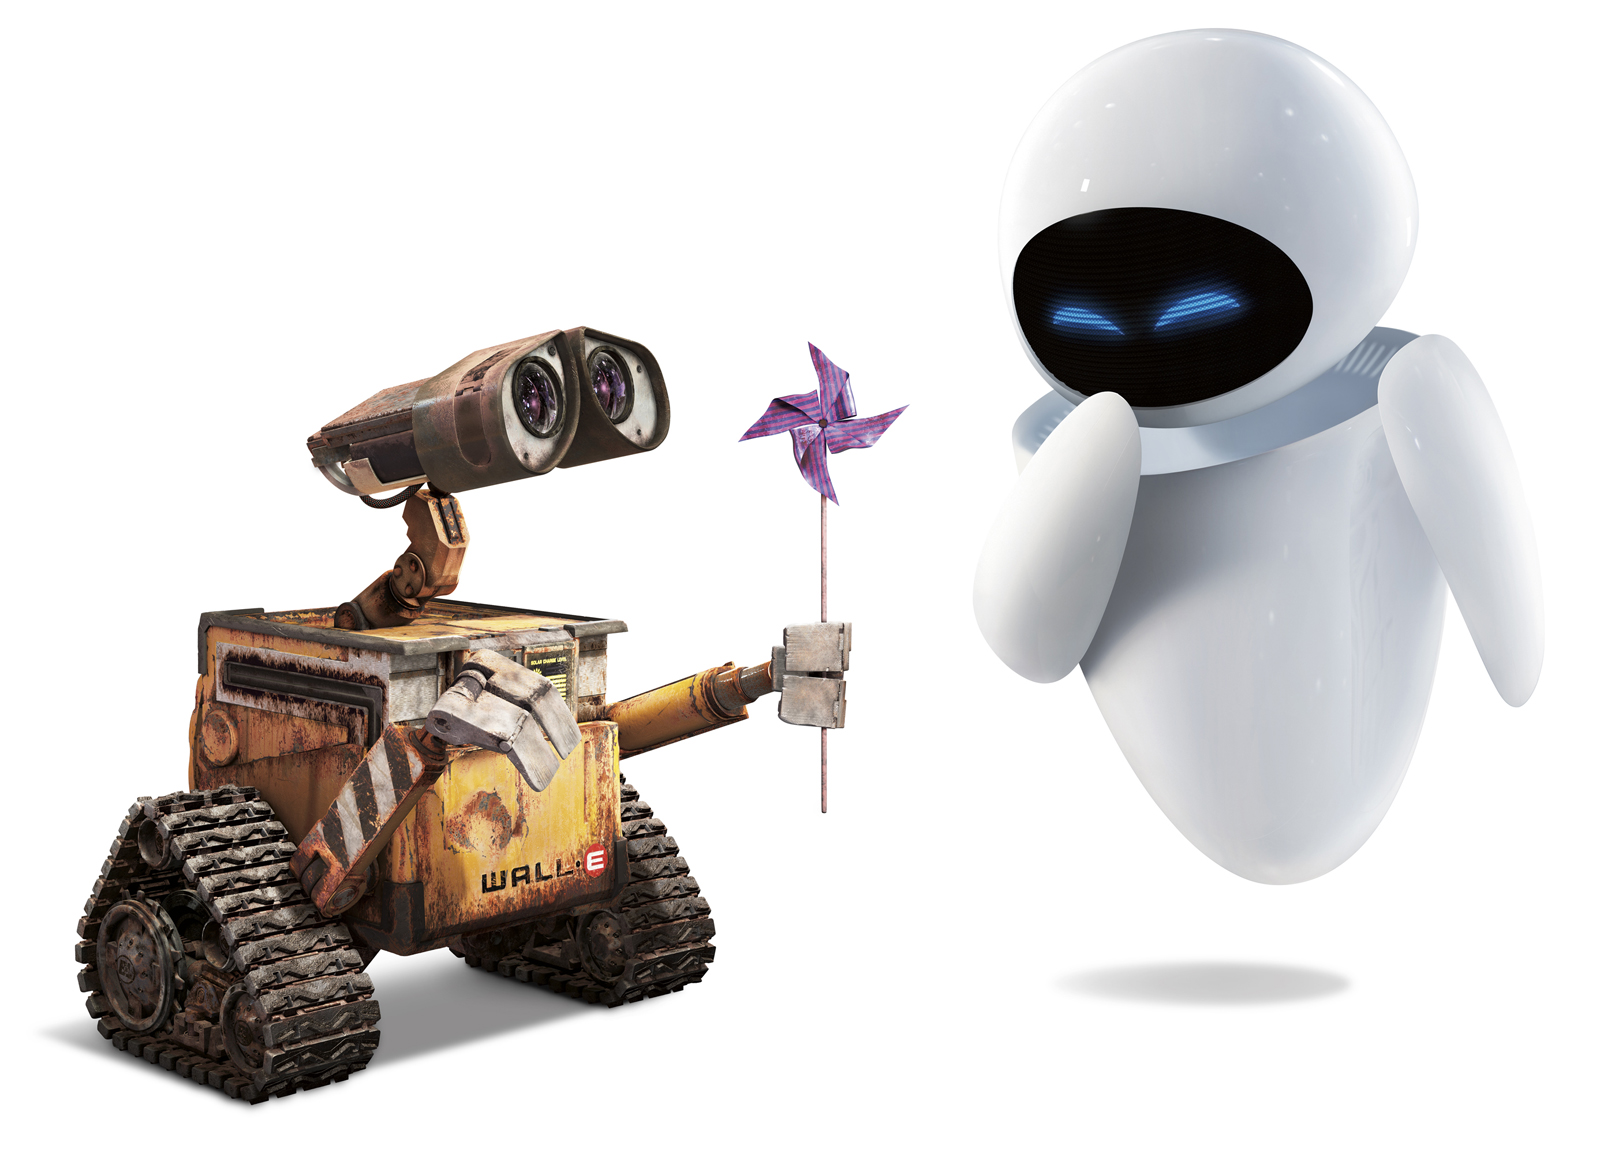 WALL-E 3D Movie HD Wallpapers